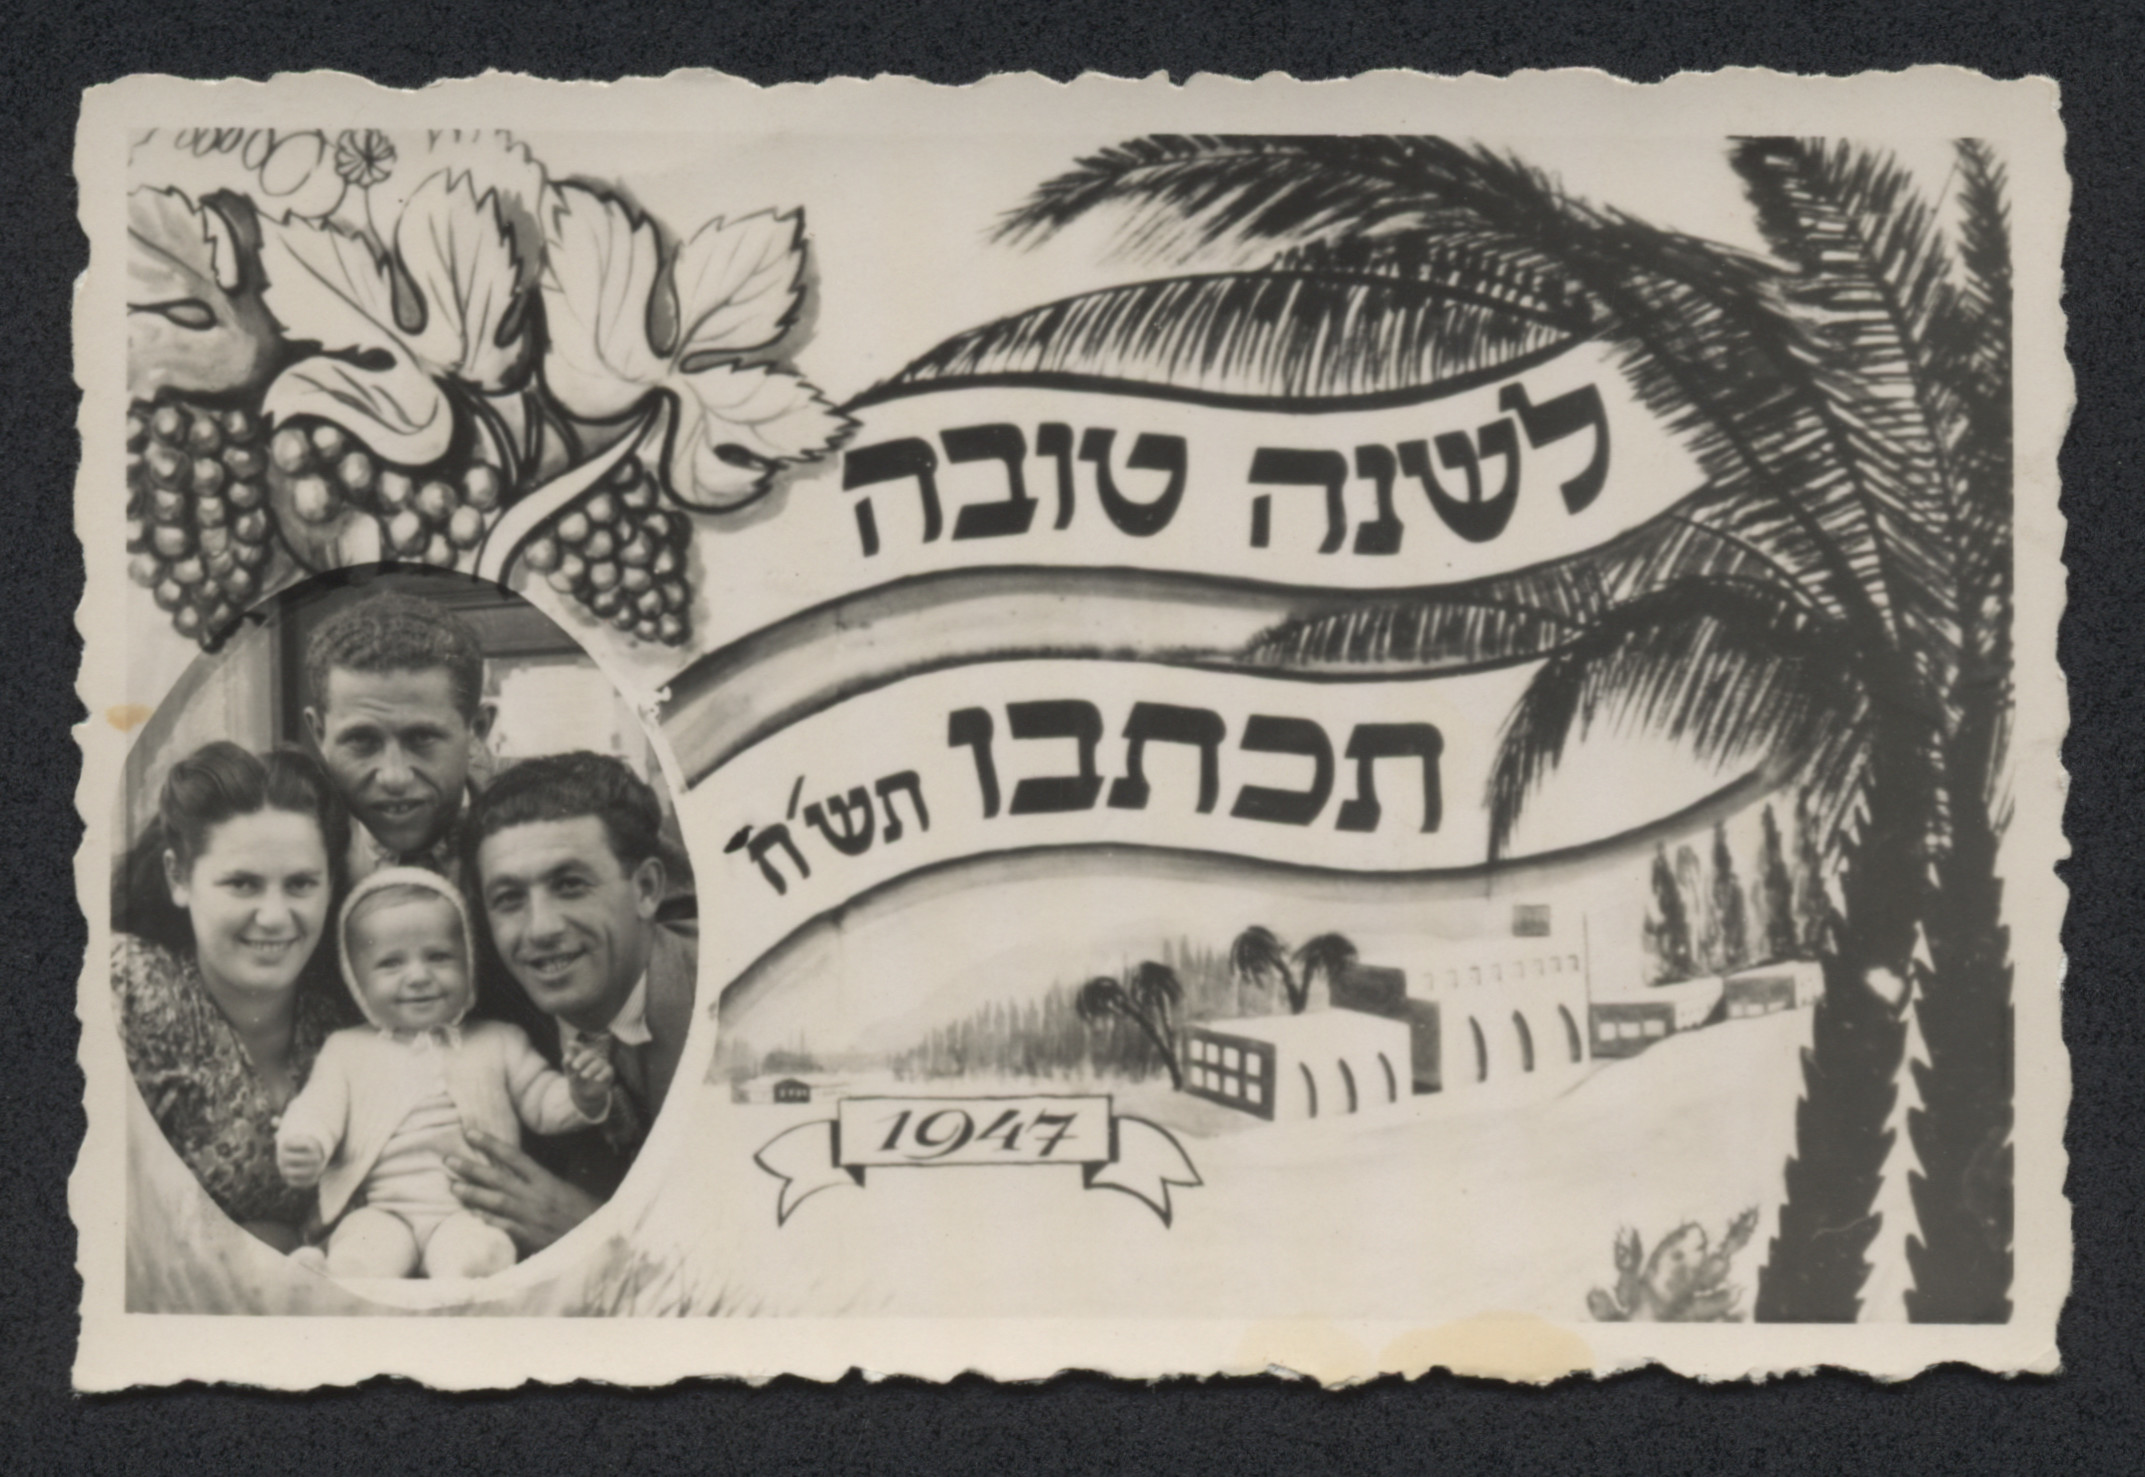 Jewish New Years card sent from the Greenfield family [probably from Braunau].